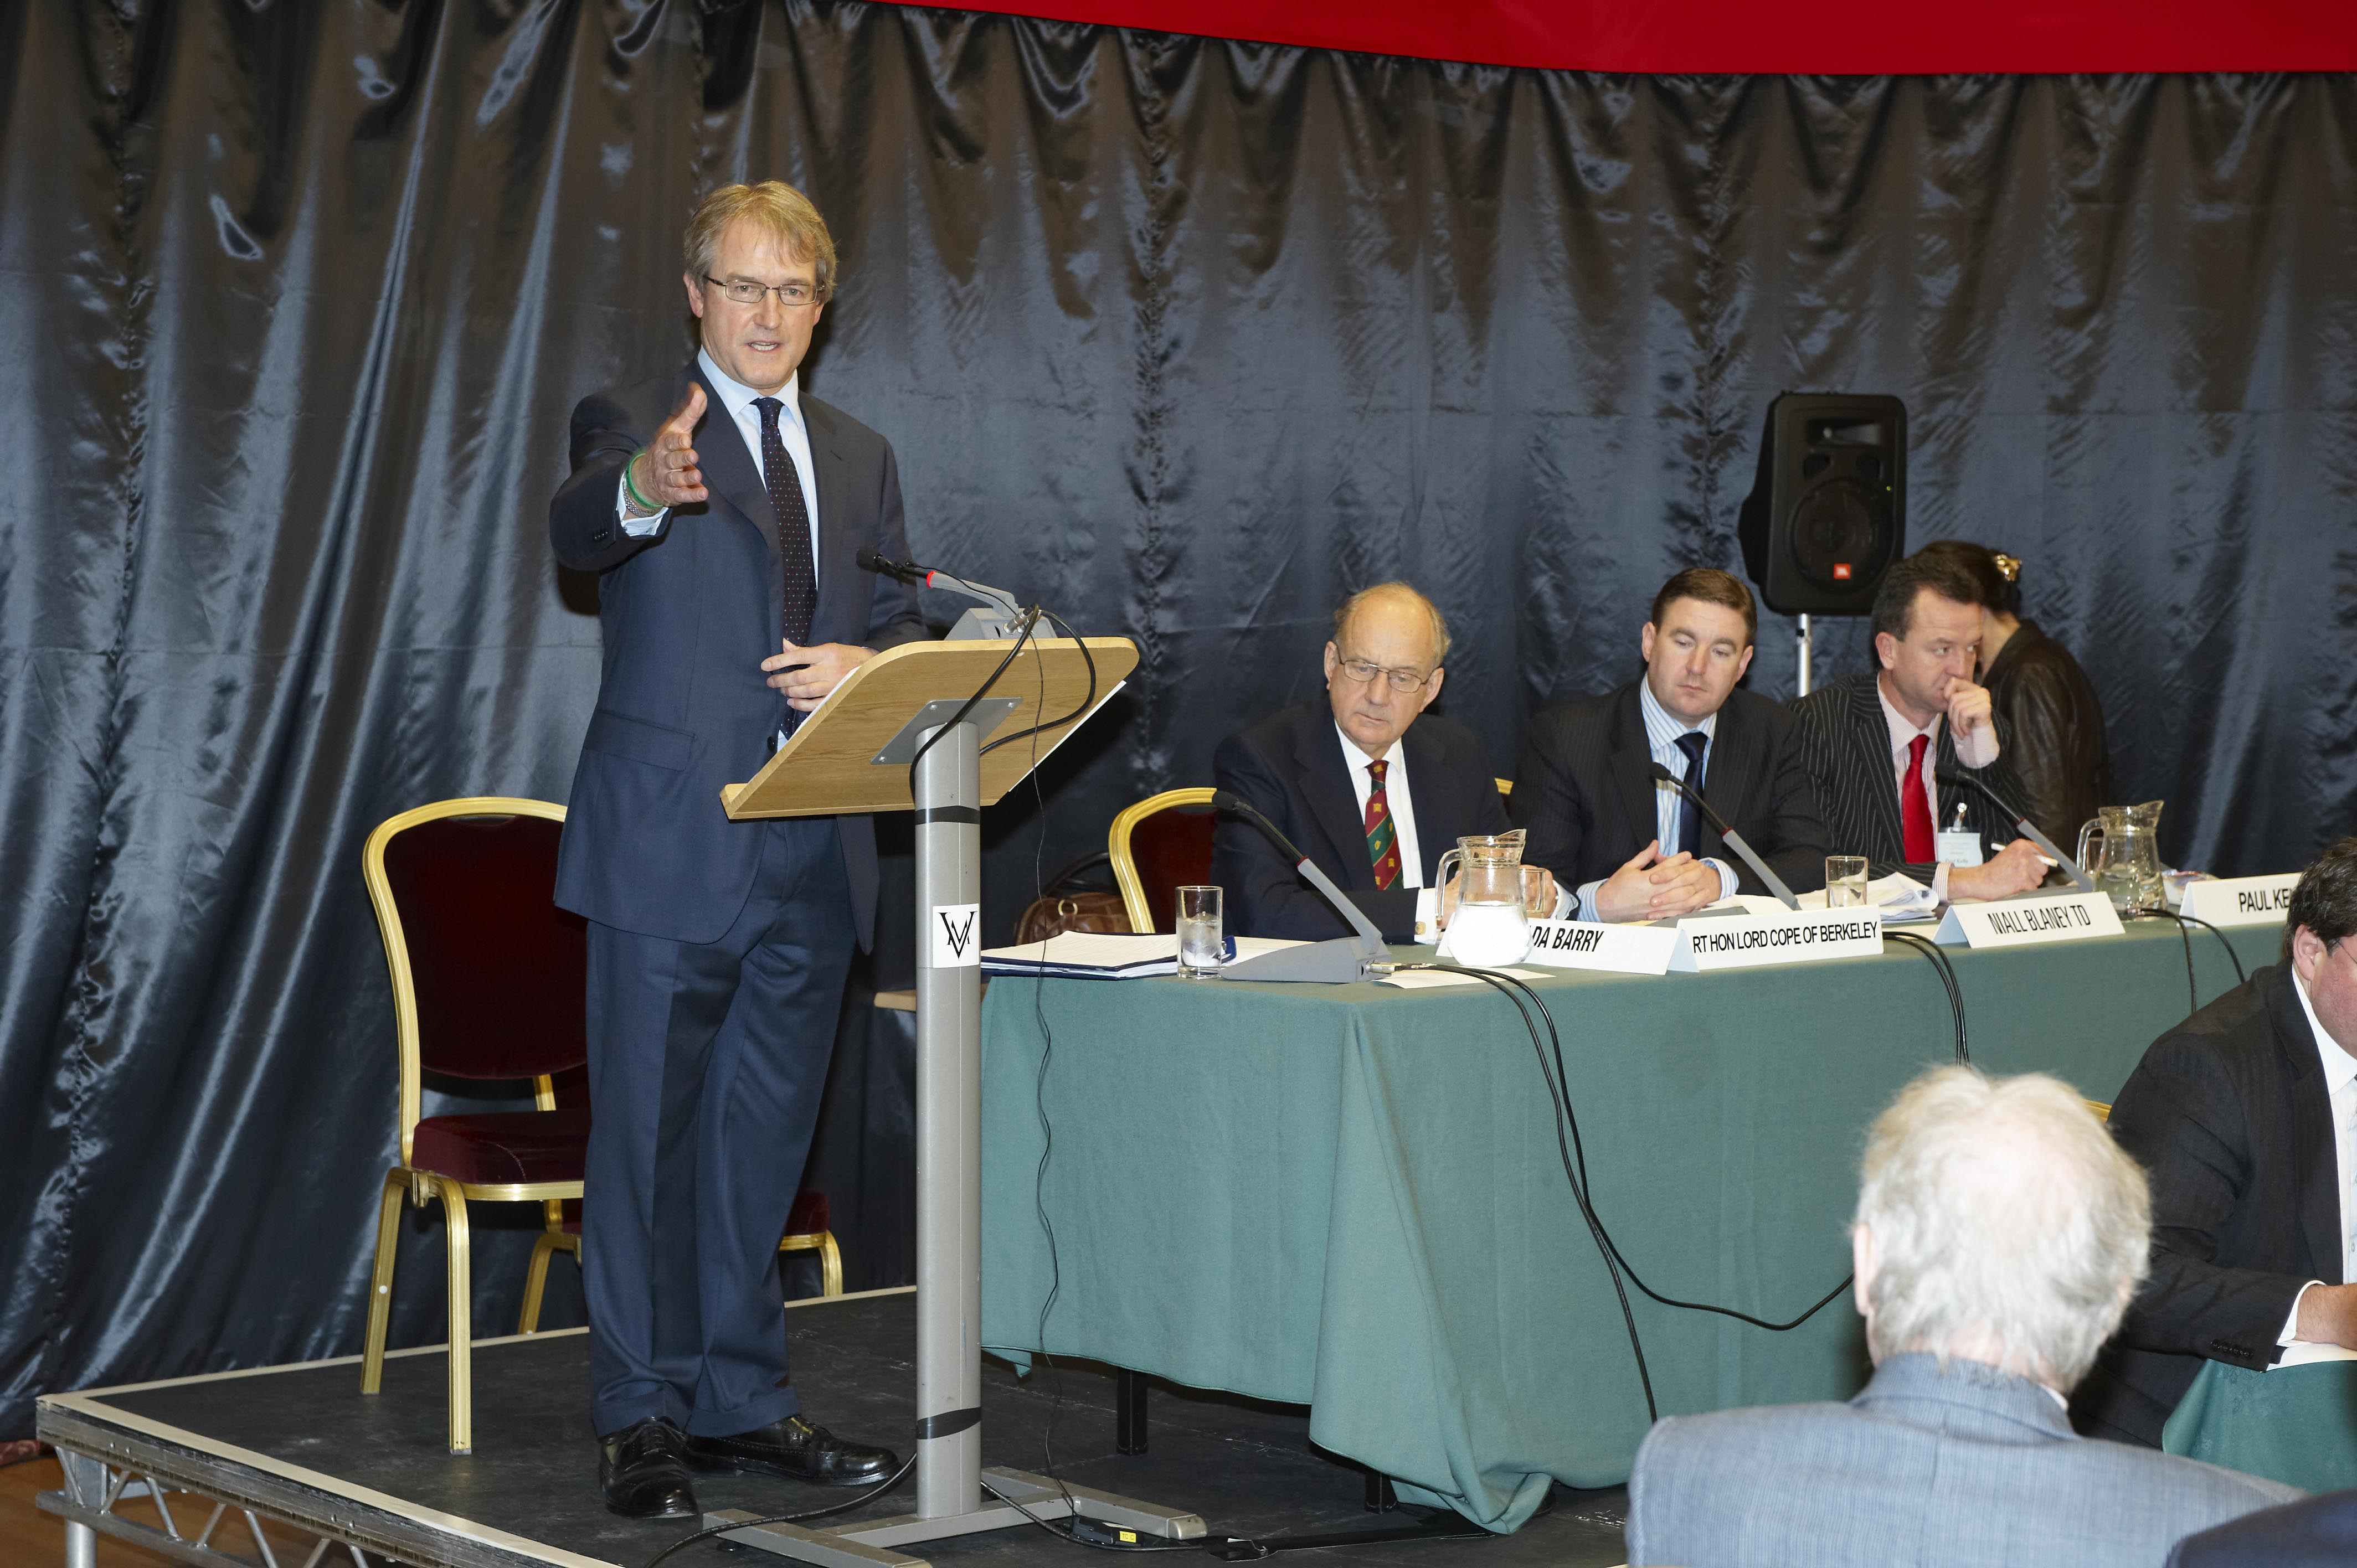 Secretary of State for Northern Ireland, Owen Paterson MP, addresses the BIPA plenary in the Isle of Man